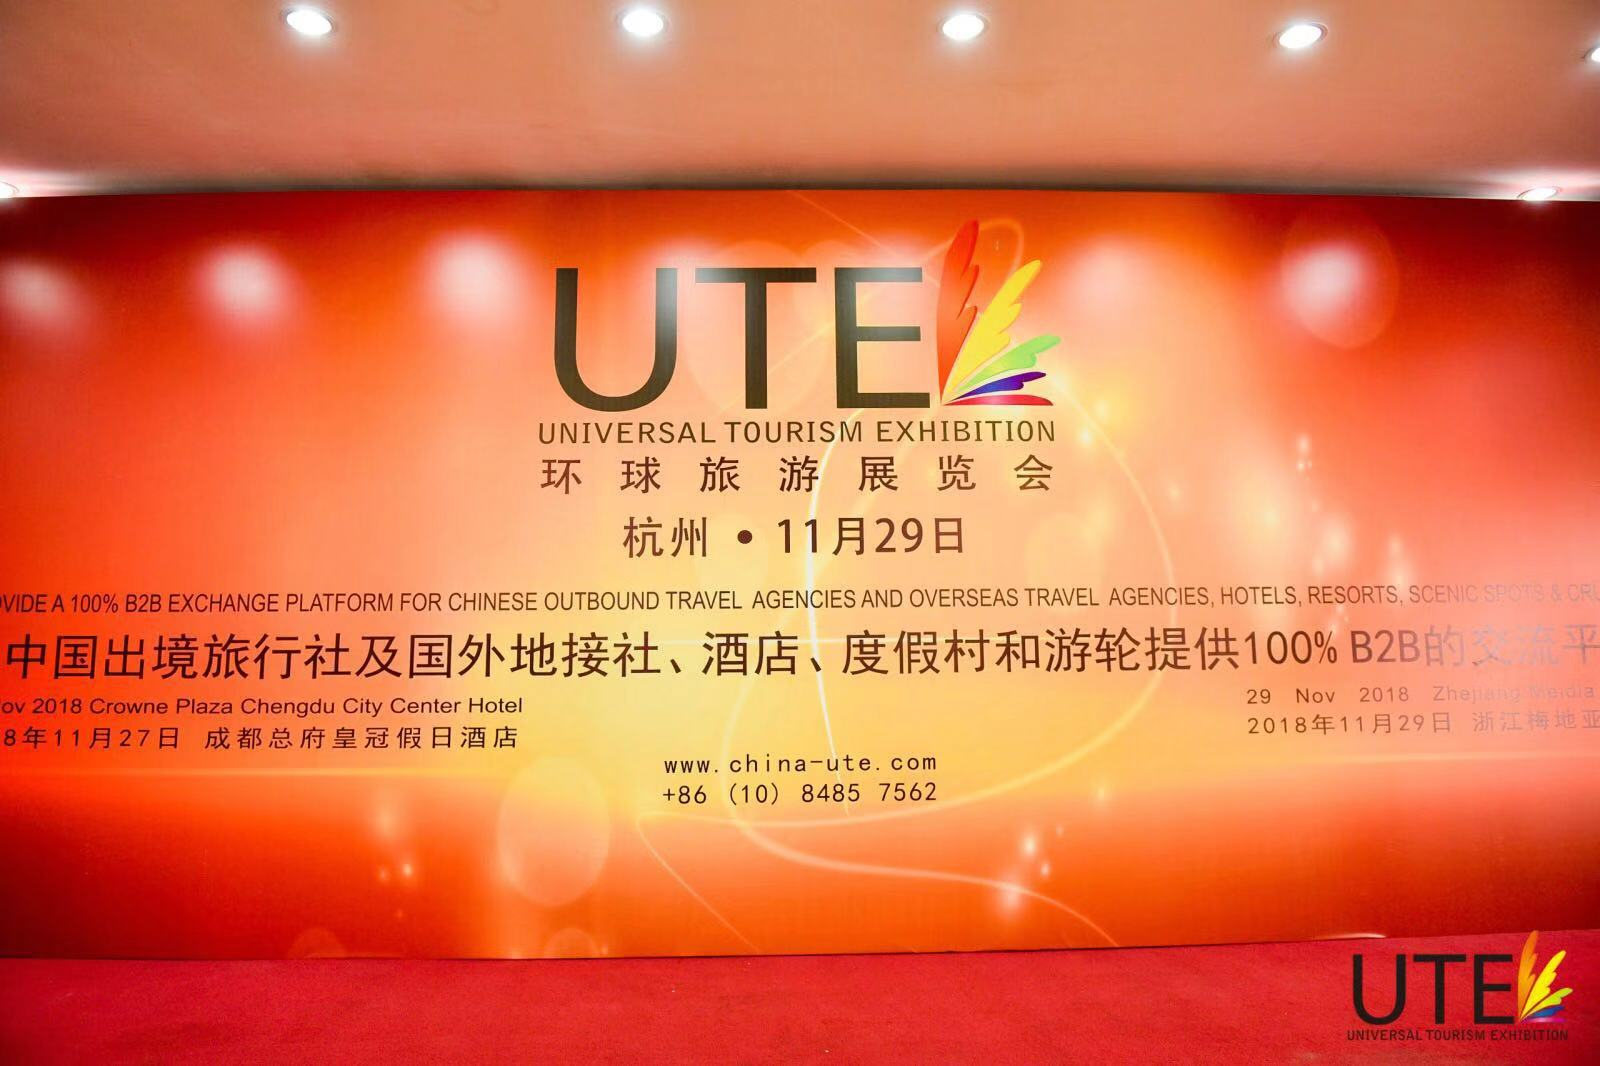 Photo Live of UTE on 29th,Nov 2018 in Hangzhou